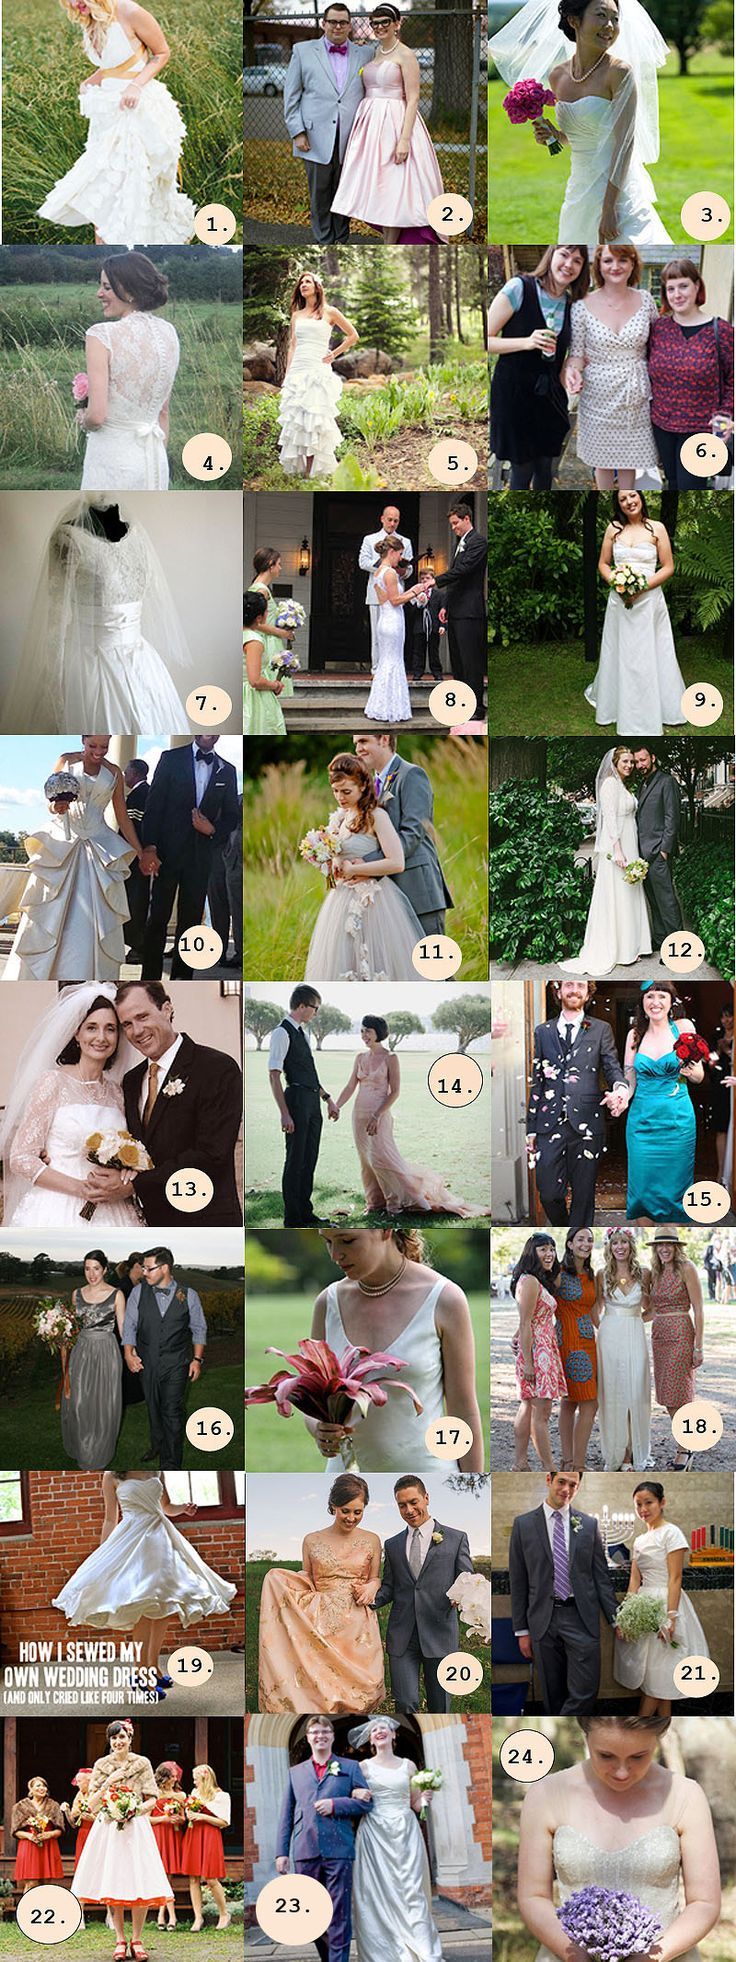 Inspirational sewers creating their own wedding dresses. Here is a list of 24 brave creators. #igive2hoots #wedding #dress #weddingdress #sewing #inspirational #alternative #handmade #sewer #ethical